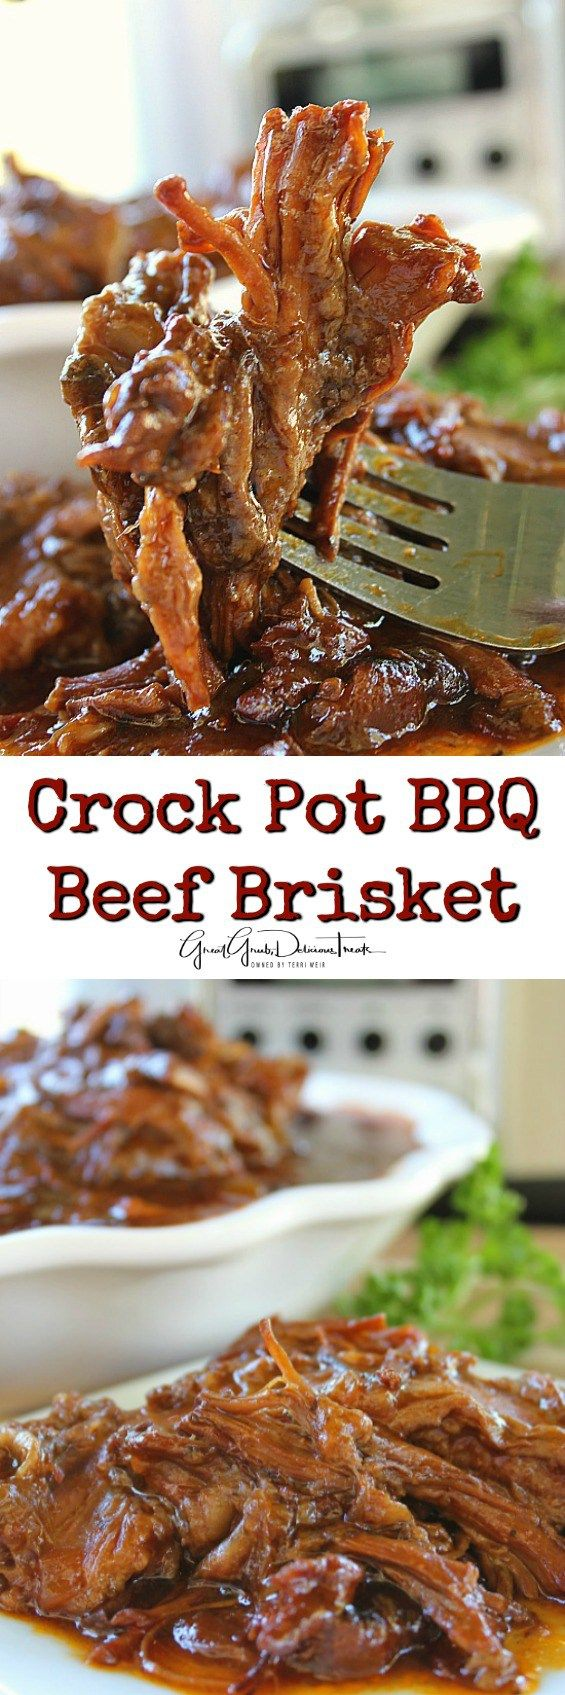 Crock Pot BBQ Beef Brisket - Super tender in the crock pot and is great to use in many different recipes.